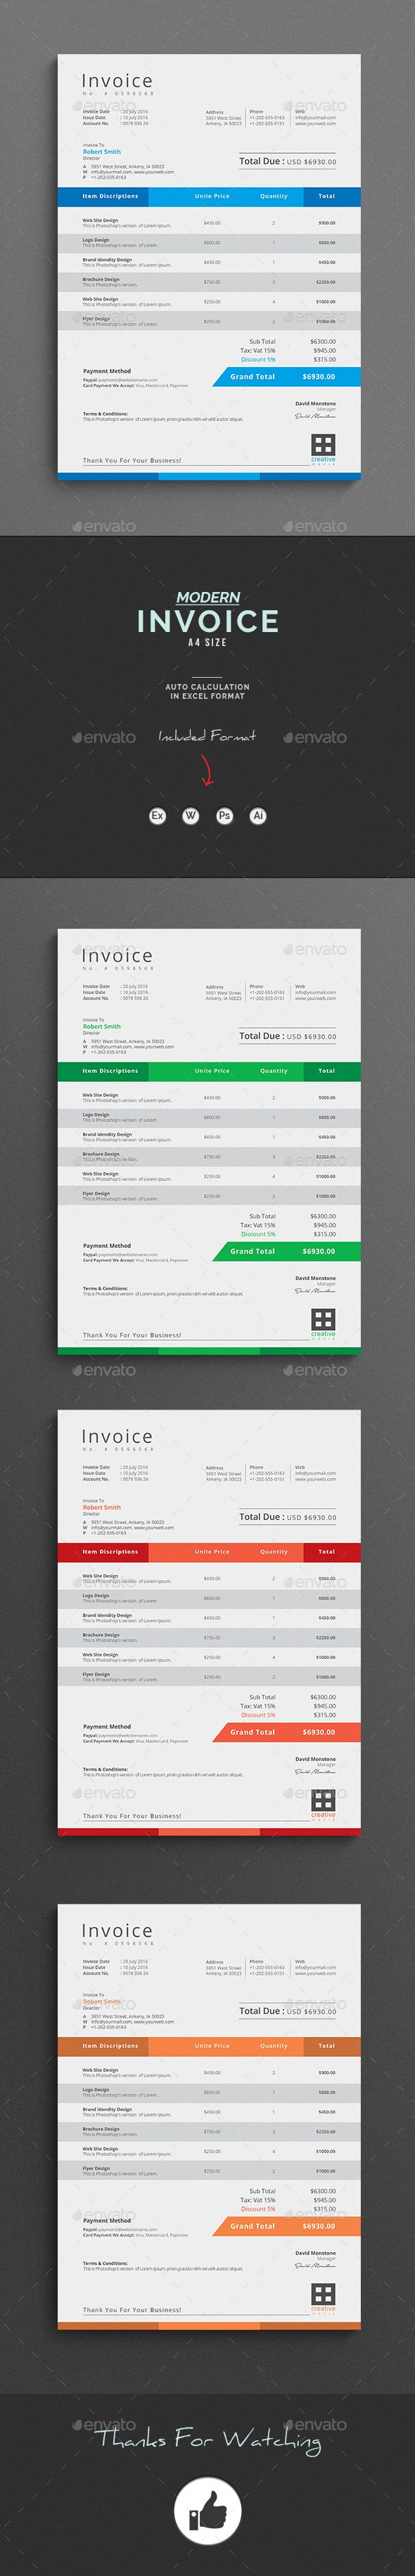 Invoice Clean Invoice Word Template with super modern and Corporate look. This invoice template has MS Excel Version with automatic calculation.  Corporate Invoice page designs are very easy to use and customize, so you can quickly tailor-make your letterhead for any opportunity. Use this letterhead template for company or corporate use.